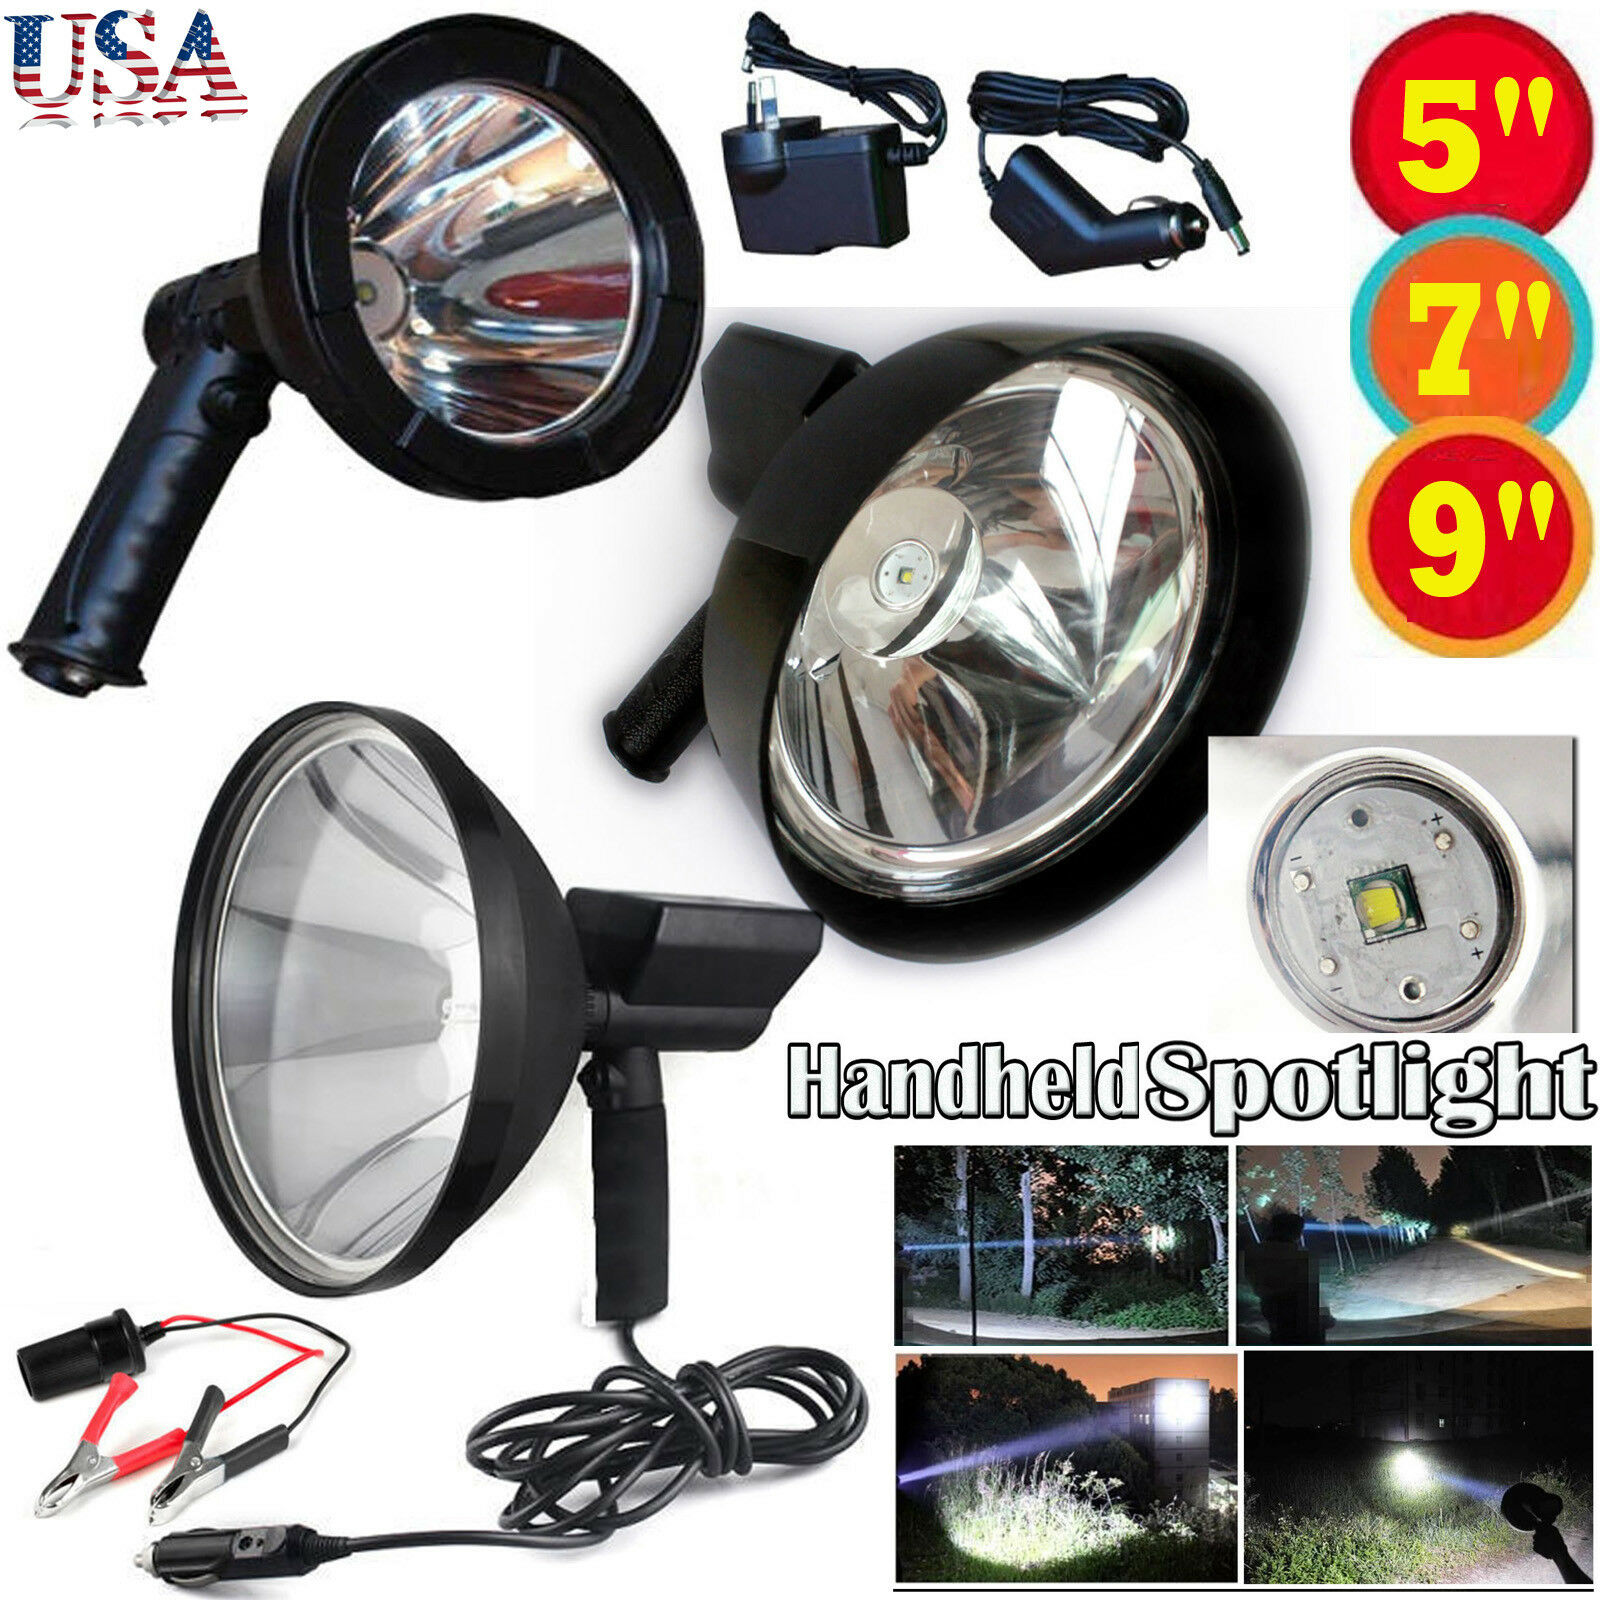 LED 50000Lumen 500W Rechargeable Spotlight Hunting Hand Held Torch Spot Light